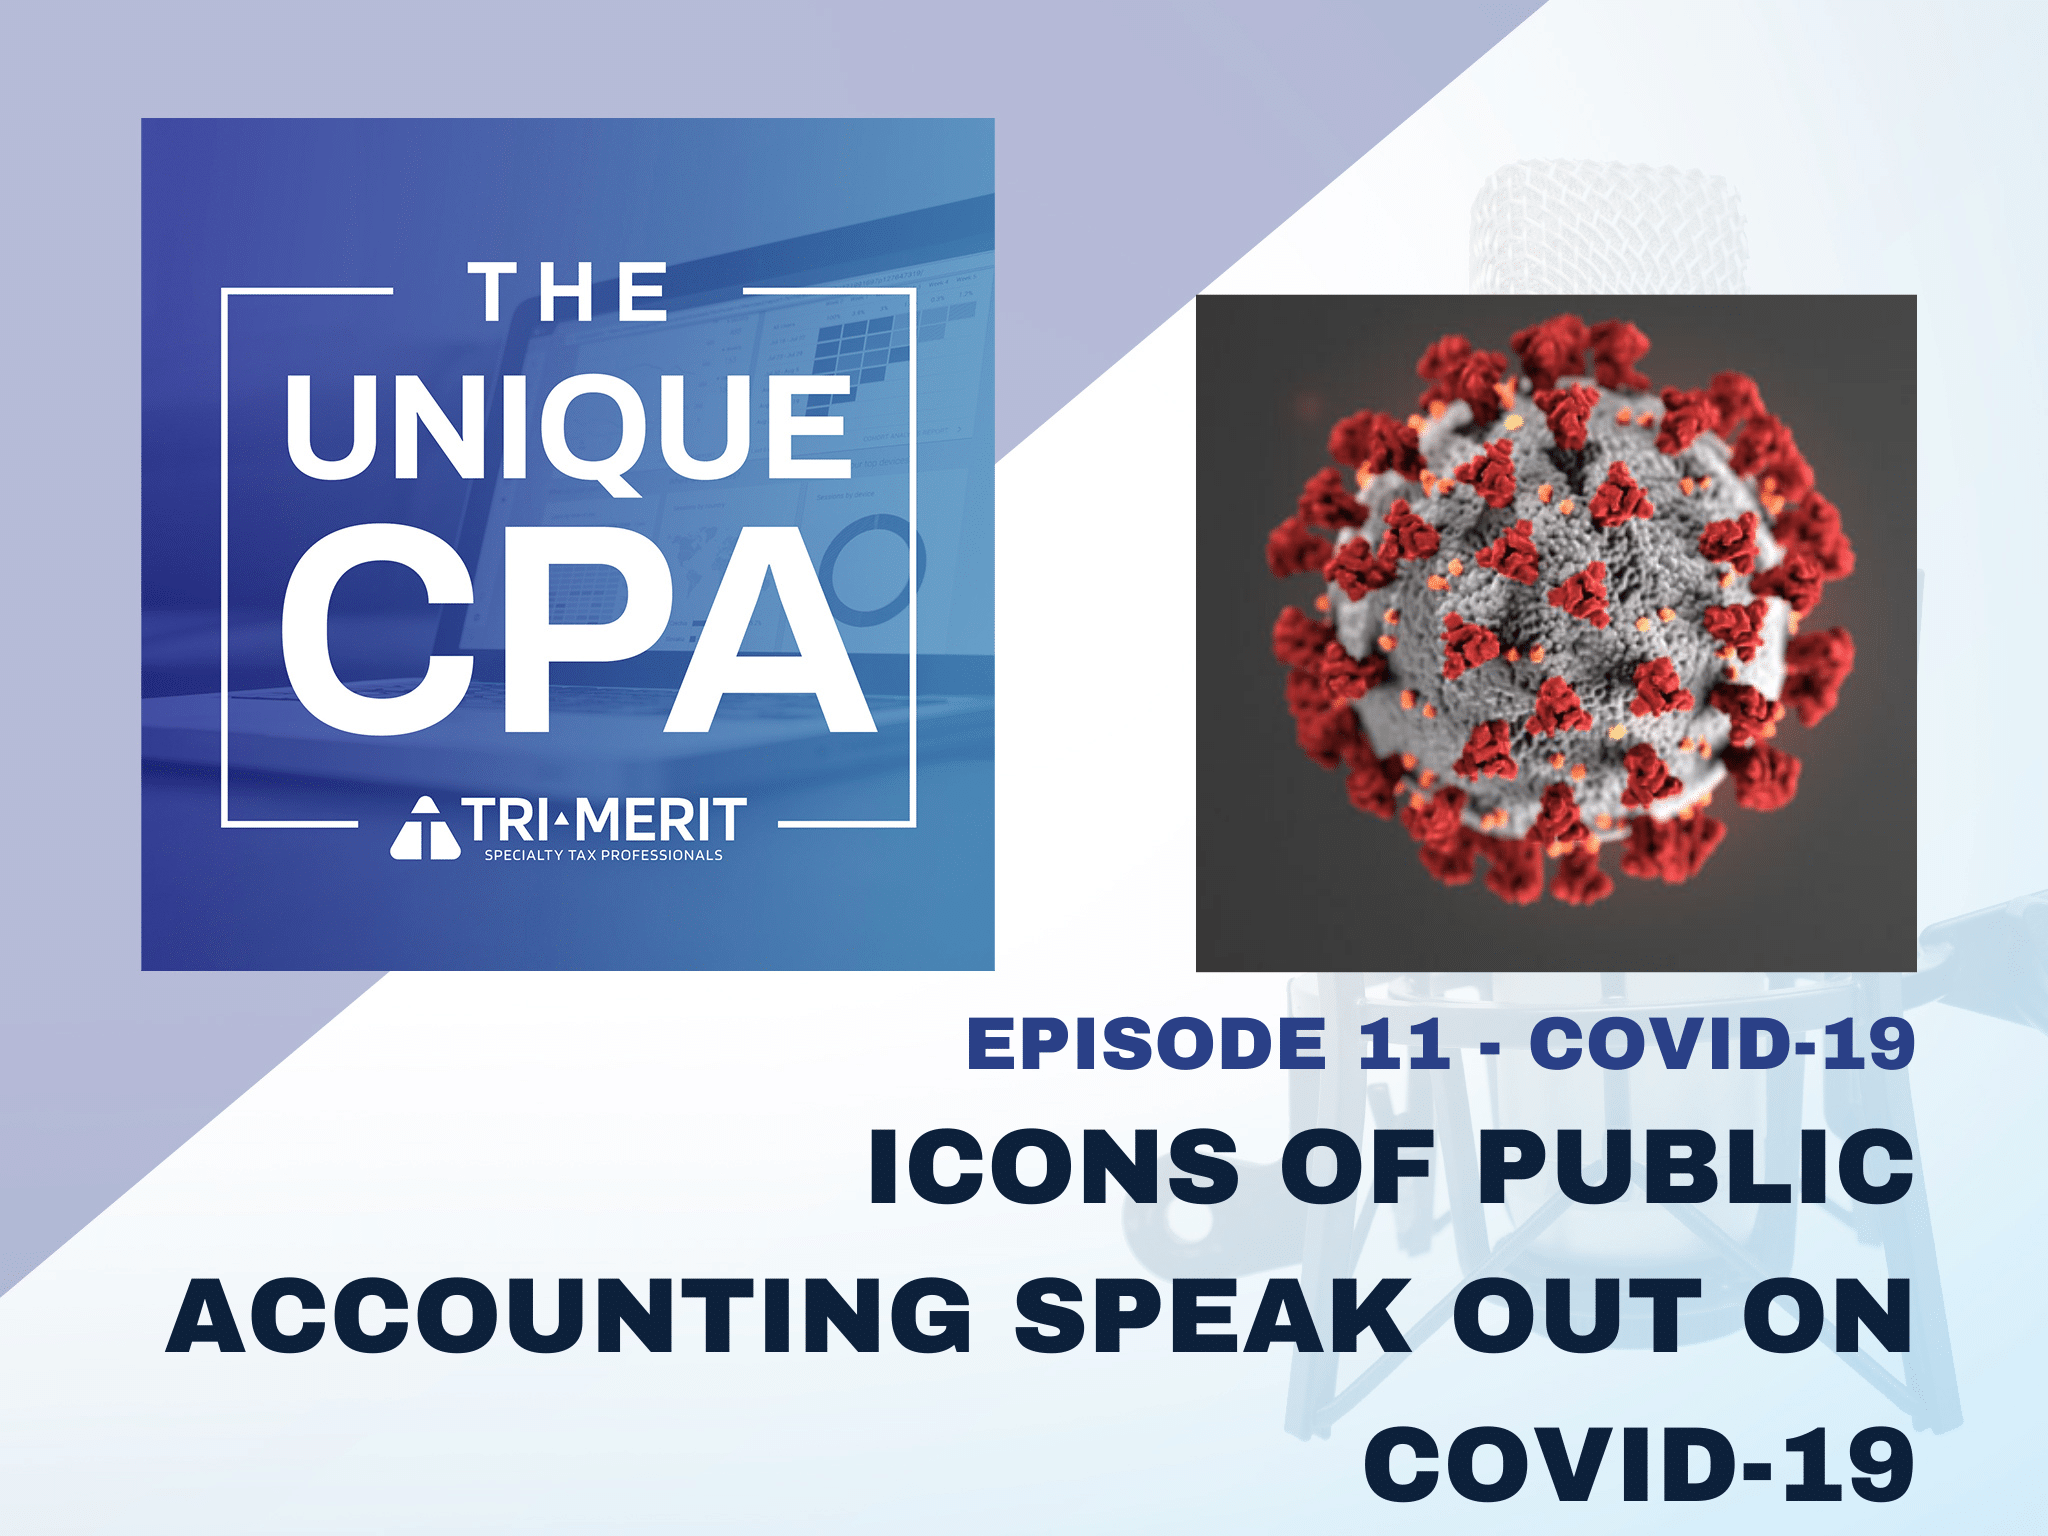 The Unique CPA Feature Image Ep 11 - Icons of Public Accounting Speak out on COVID-19 - Tri-Merit